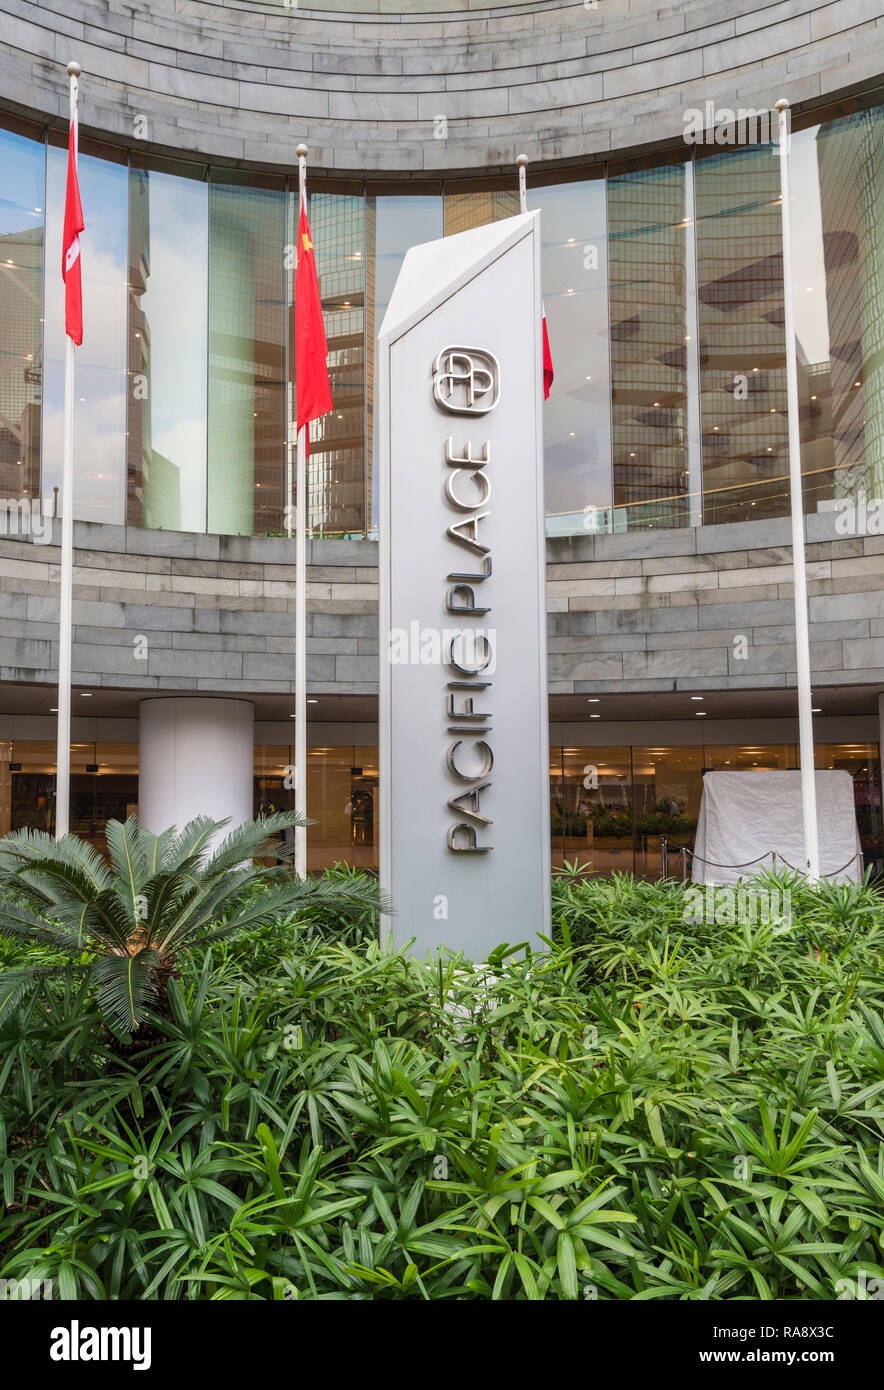 Sign and entrance to Pacific Place Shopping Mall, Admiralty, Hong Kong - Stock Image